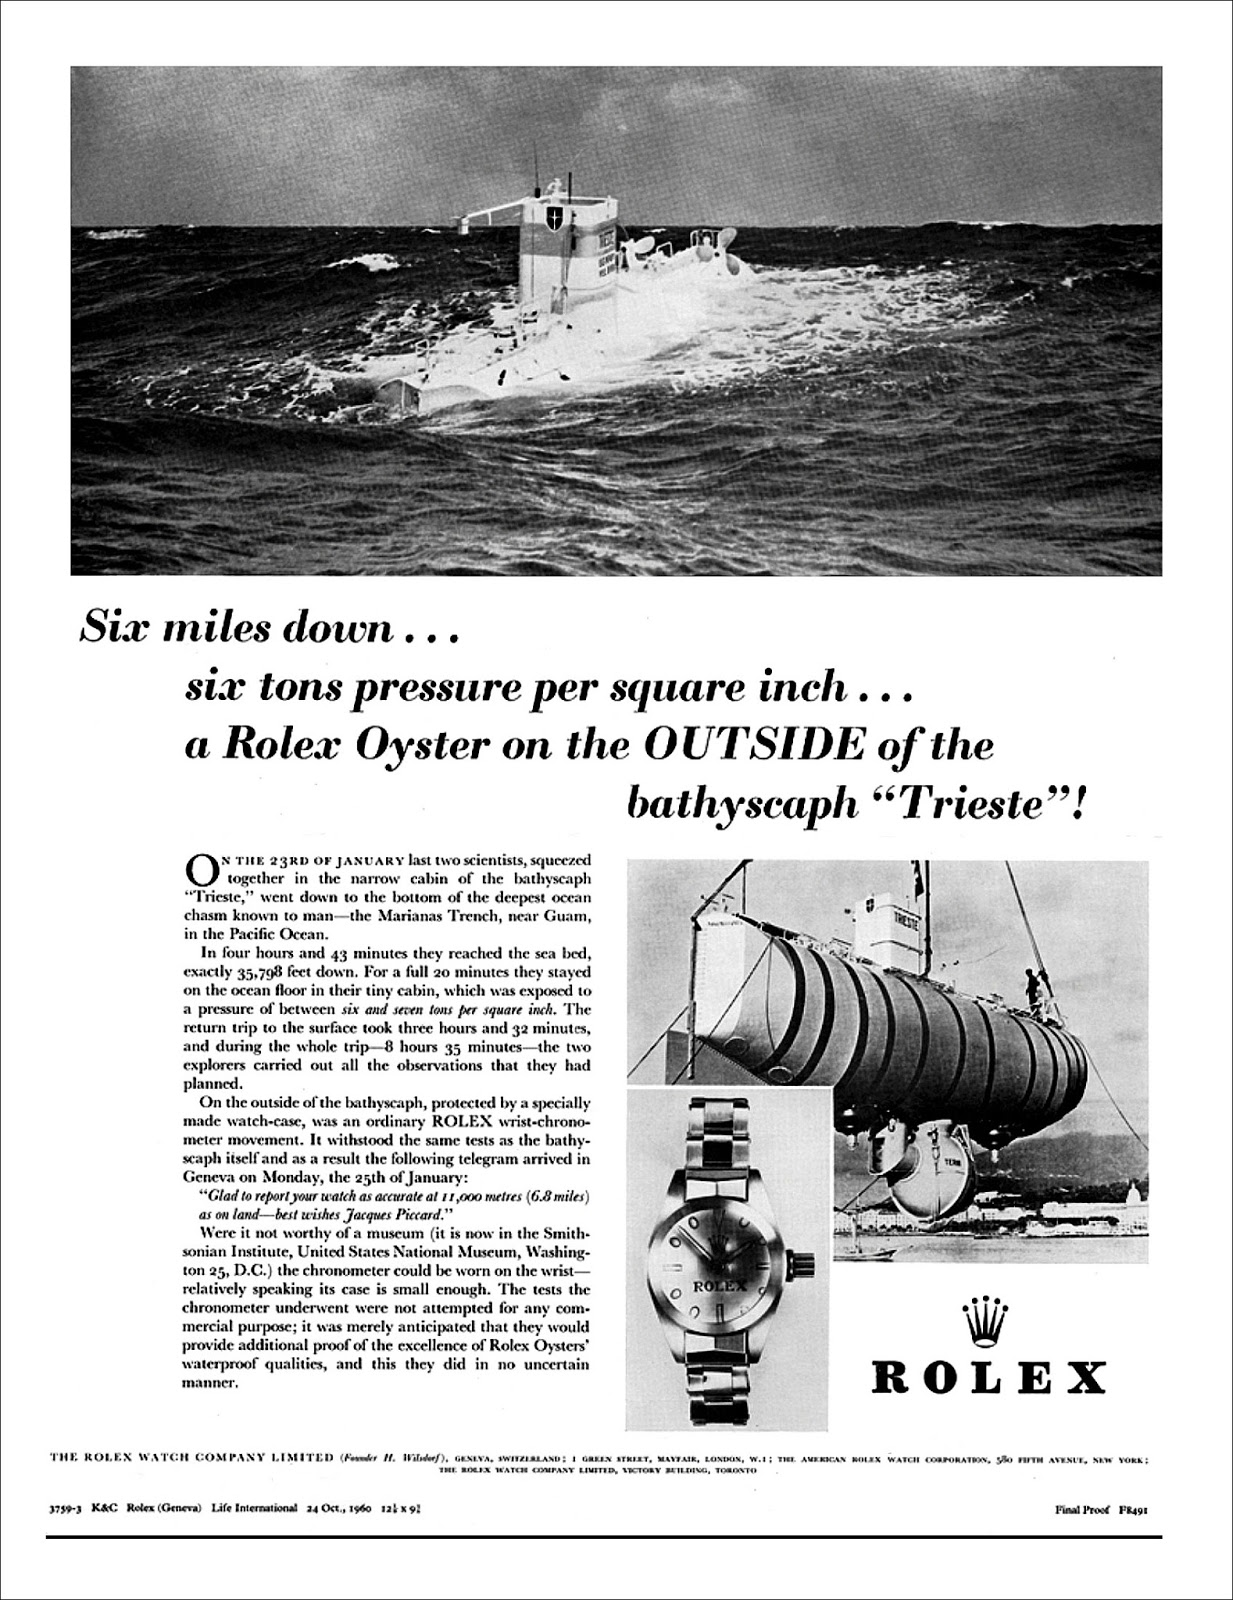 1960-rolex-deep-sea-special-ad-for-record-dive1